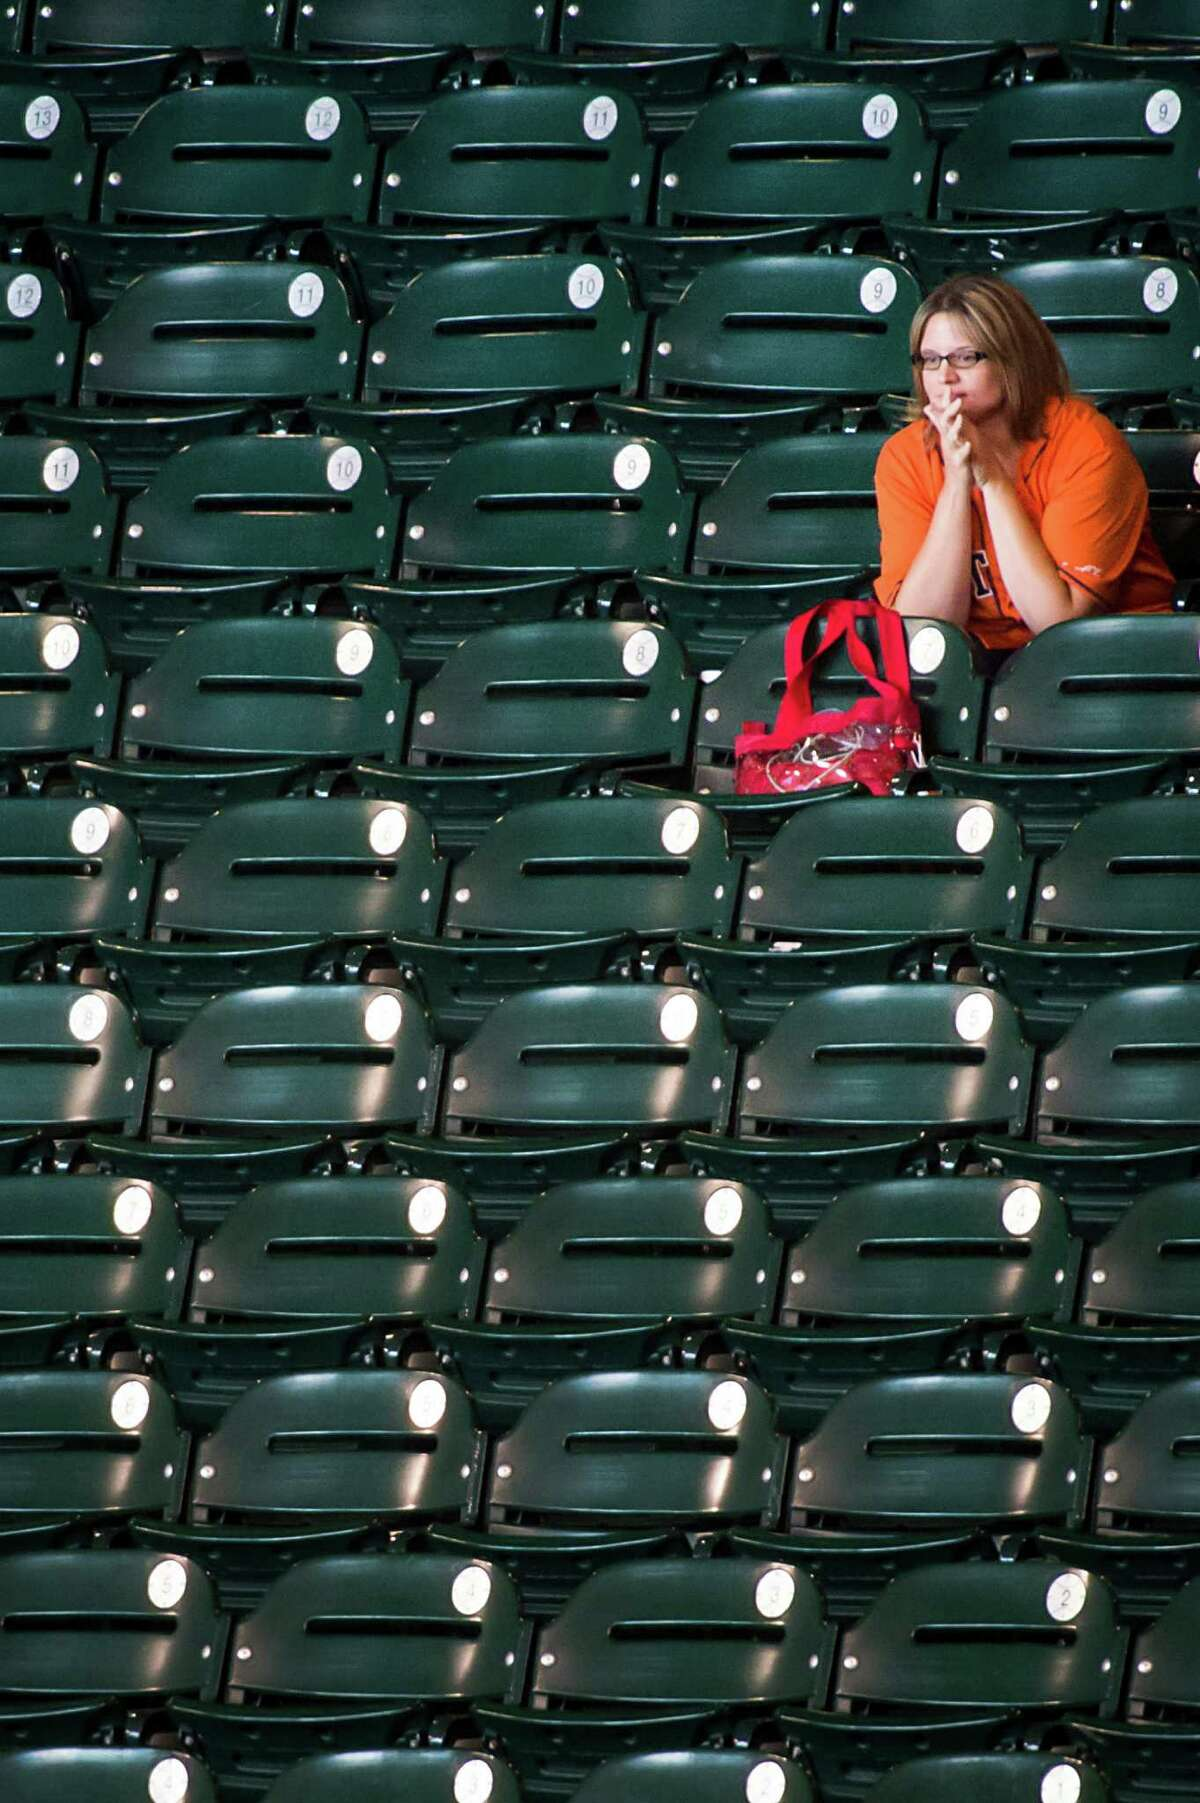 Greis Perez has plenty of room in section 124 at Minute Maid Park for most games as the Astros slide toward their third consecutive 100-loss season.